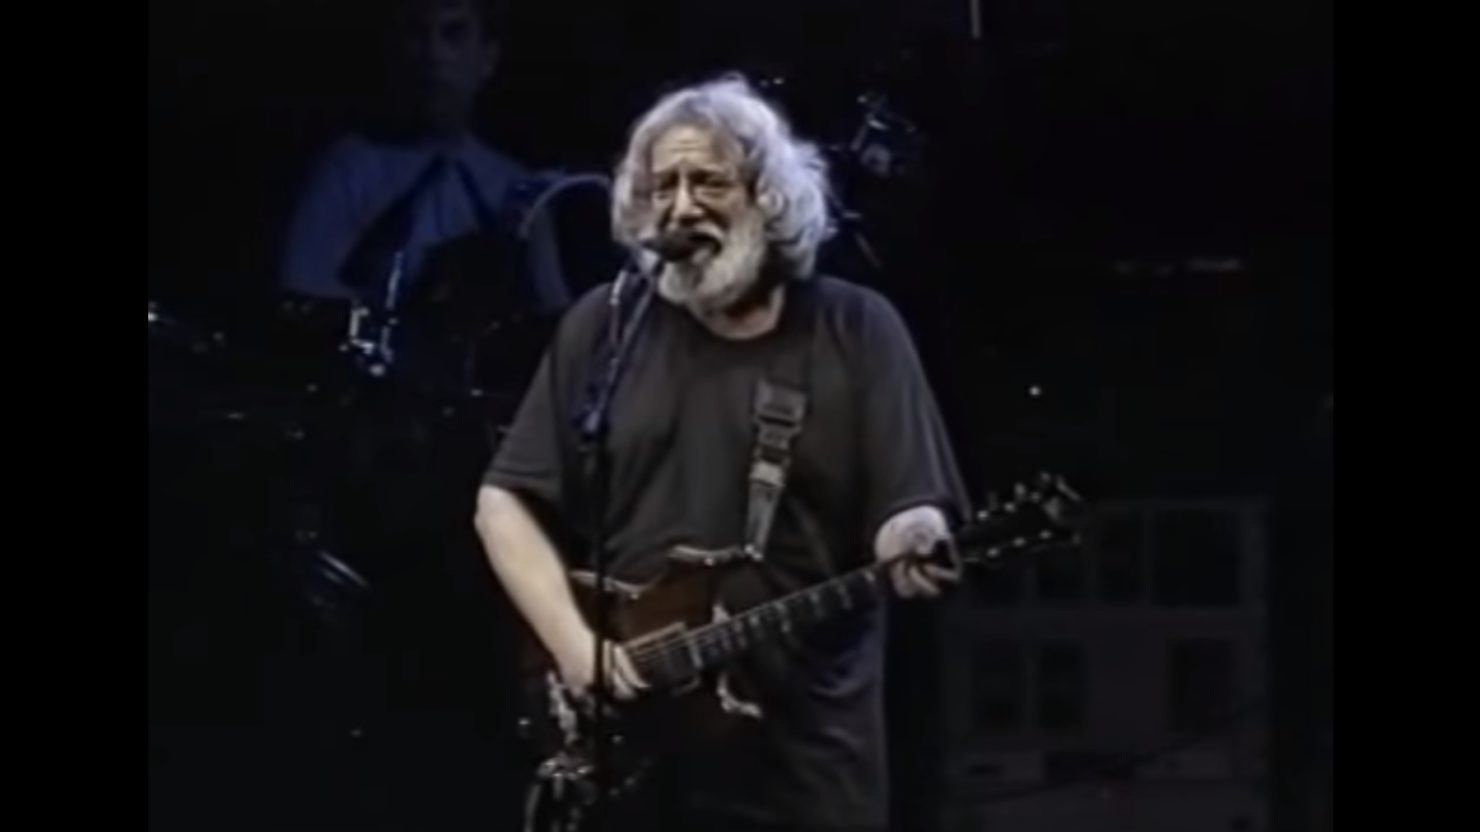 Full Show Audio: Grateful Dead Play Final Show On This Date In 1995